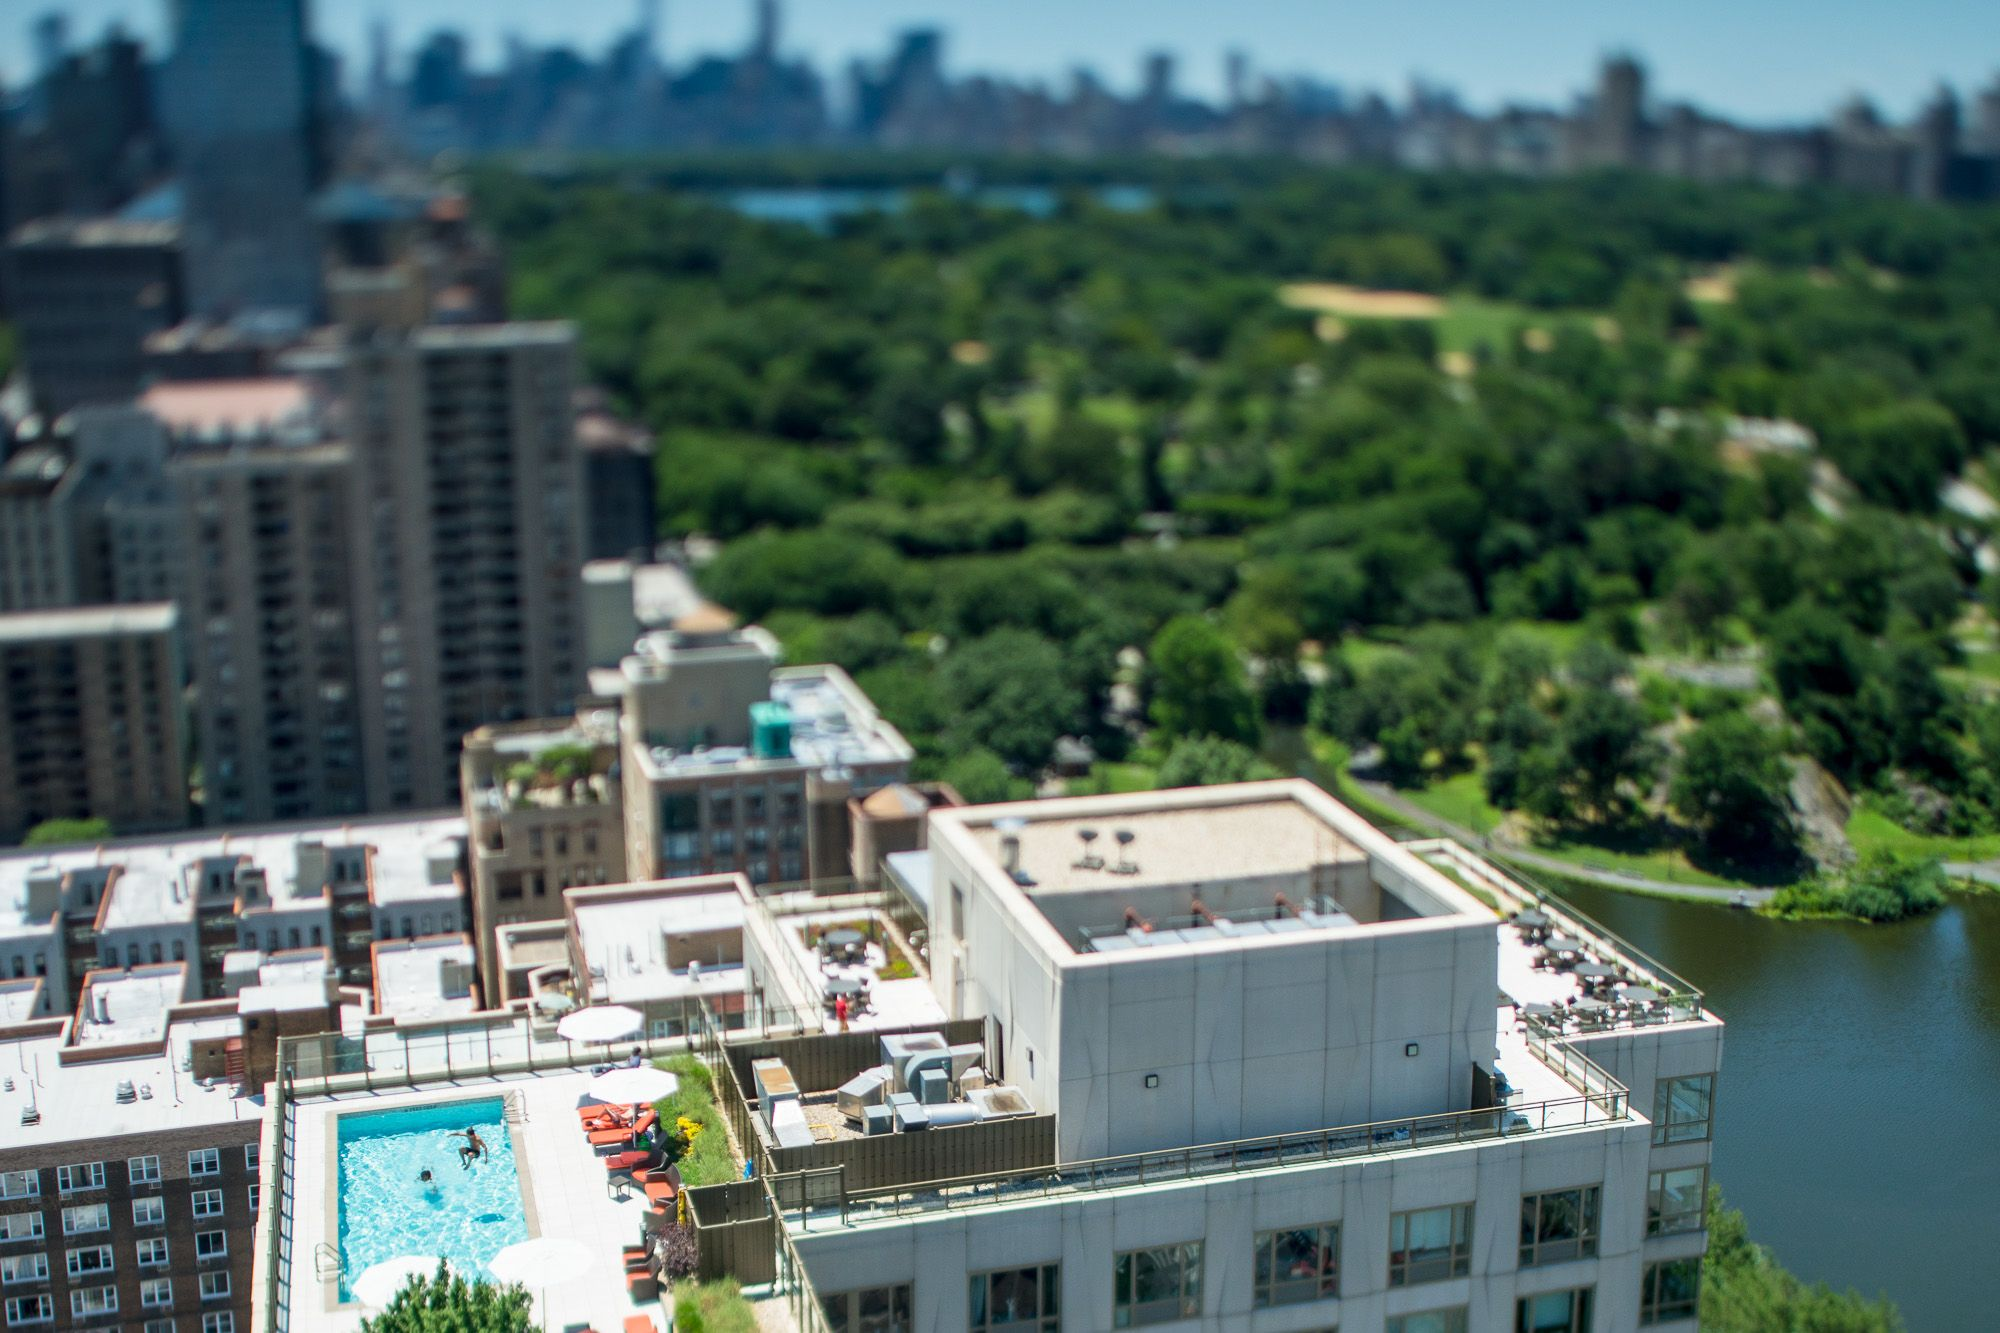 New York Resized, Jasper Leonard, tilt-shift photography, NYC aerial photography